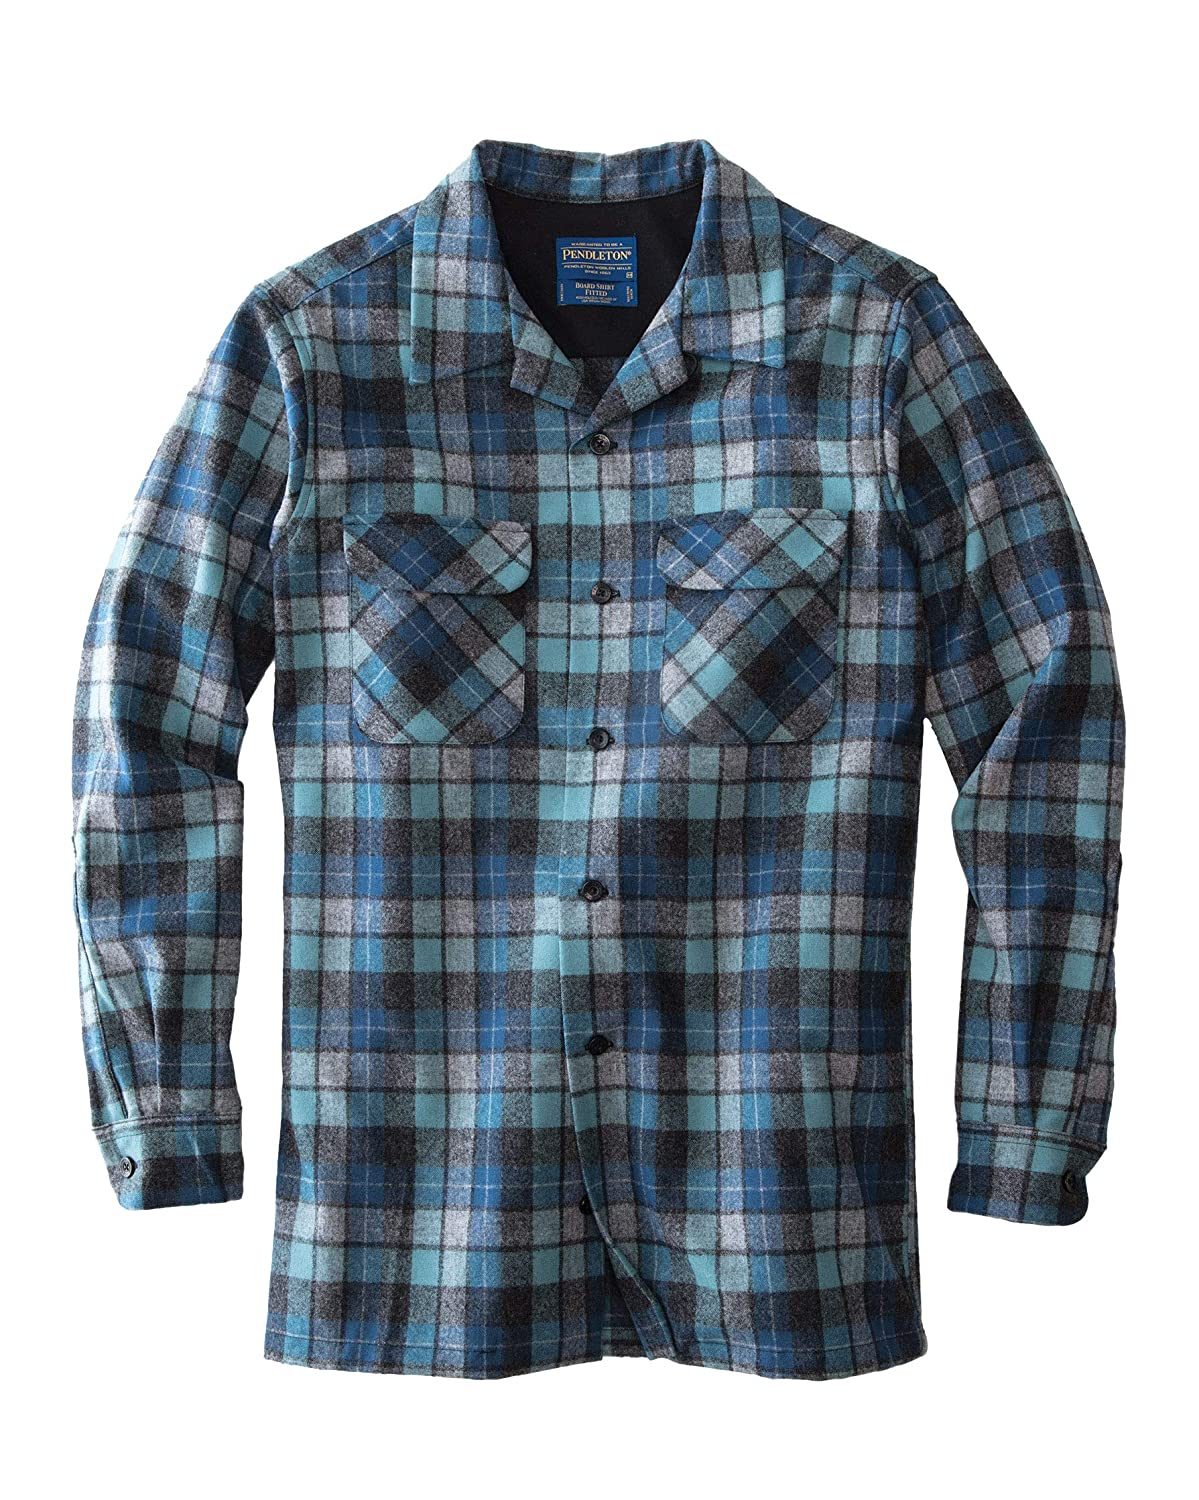 1920s Men's Dress Shirts, Casual Shirts Pendleton Mens Long Sleeve Board Shirt $104.25 AT vintagedancer.com